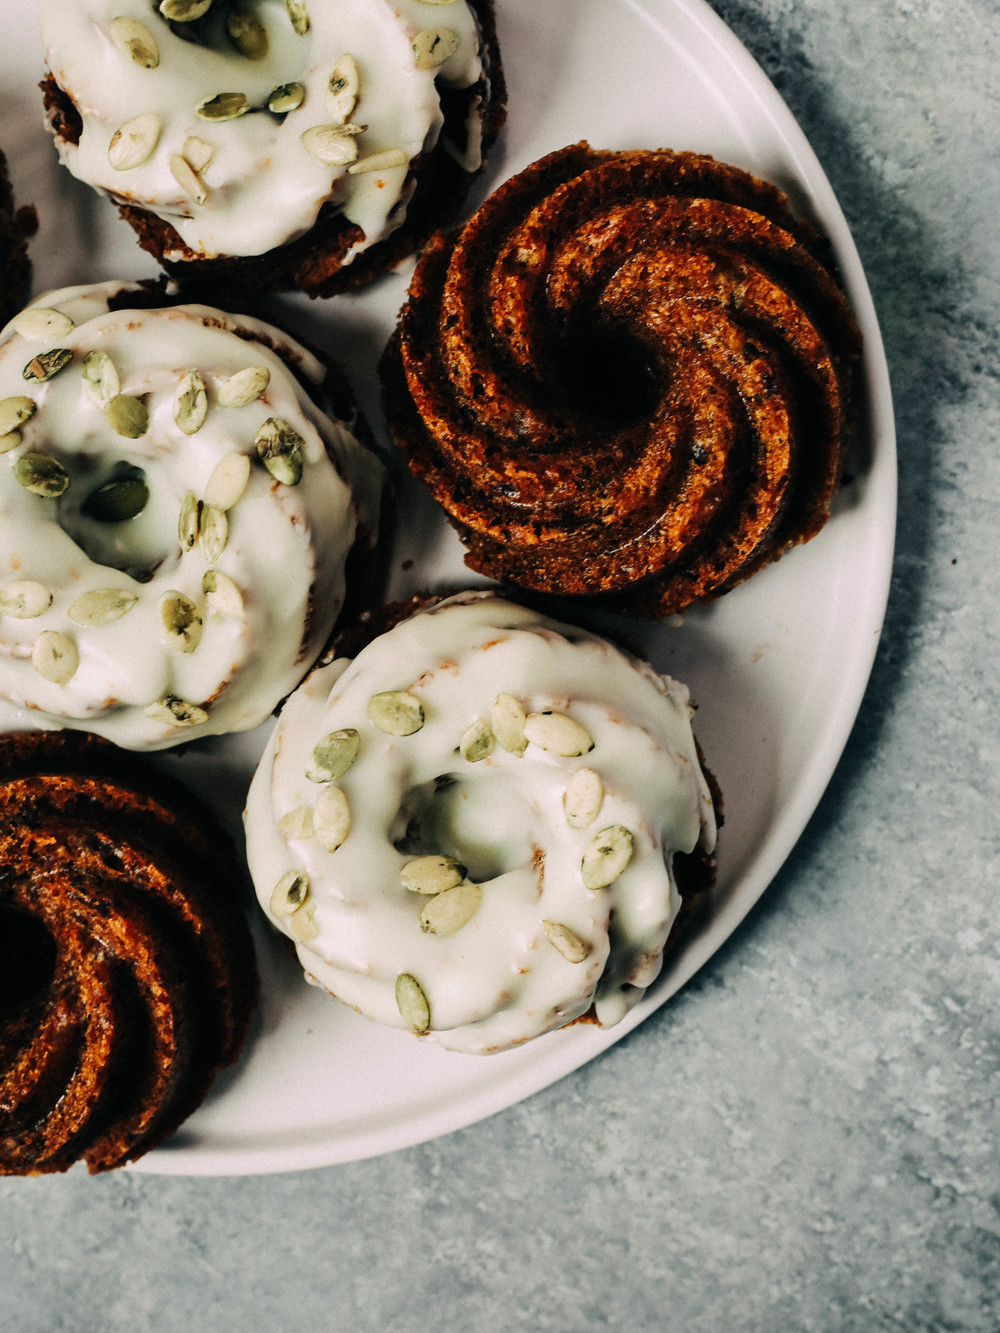 Kabocha, Olive Oil Chocolate Cakes with Olive Oil Glaze